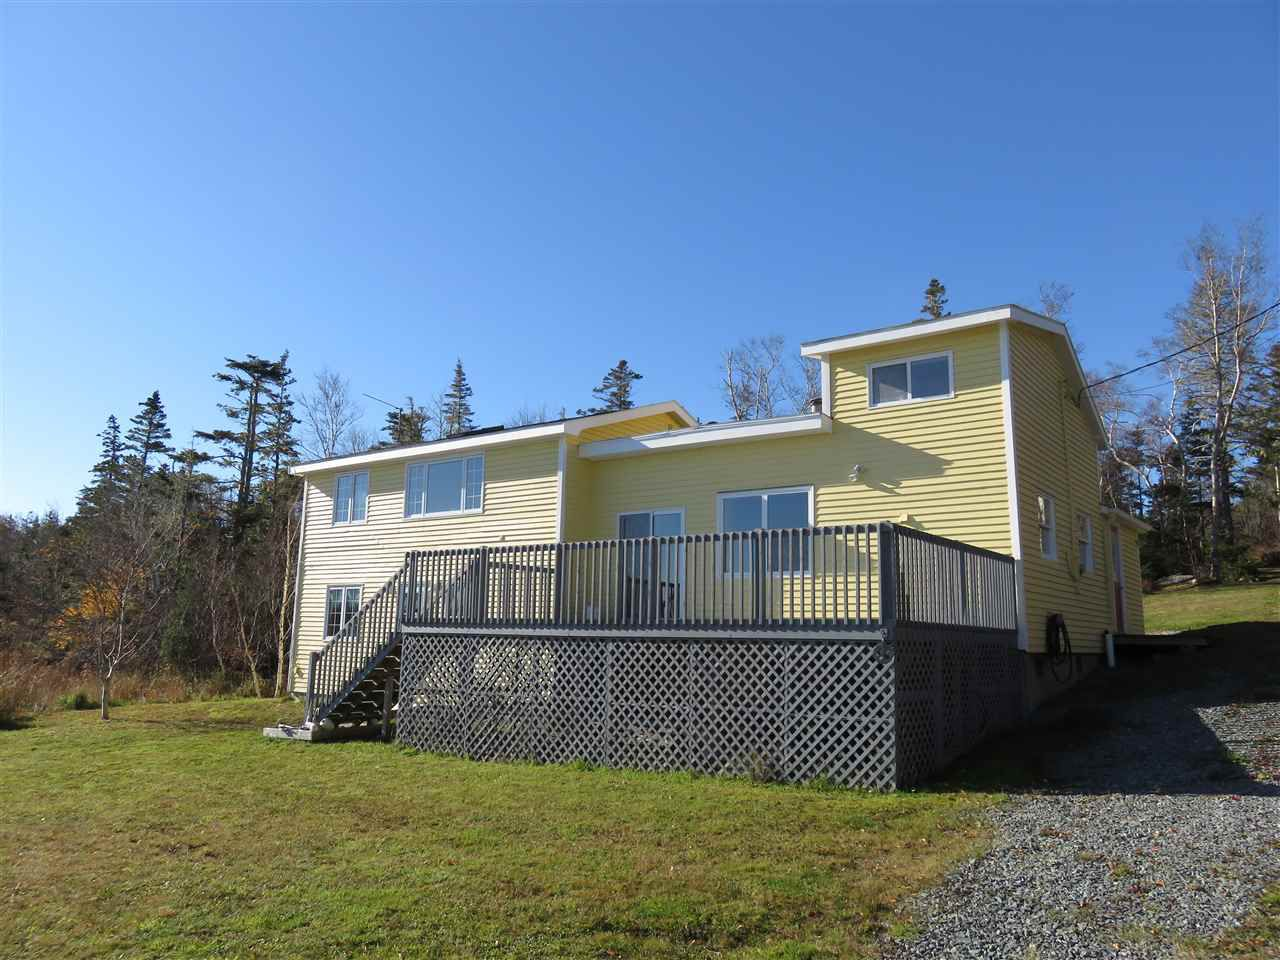 Photo 1: Photos: 783 WEST GREEN HARBOUR Road in West Green Harbour: 407-Shelburne County Residential for sale (South Shore)  : MLS®# 201701314